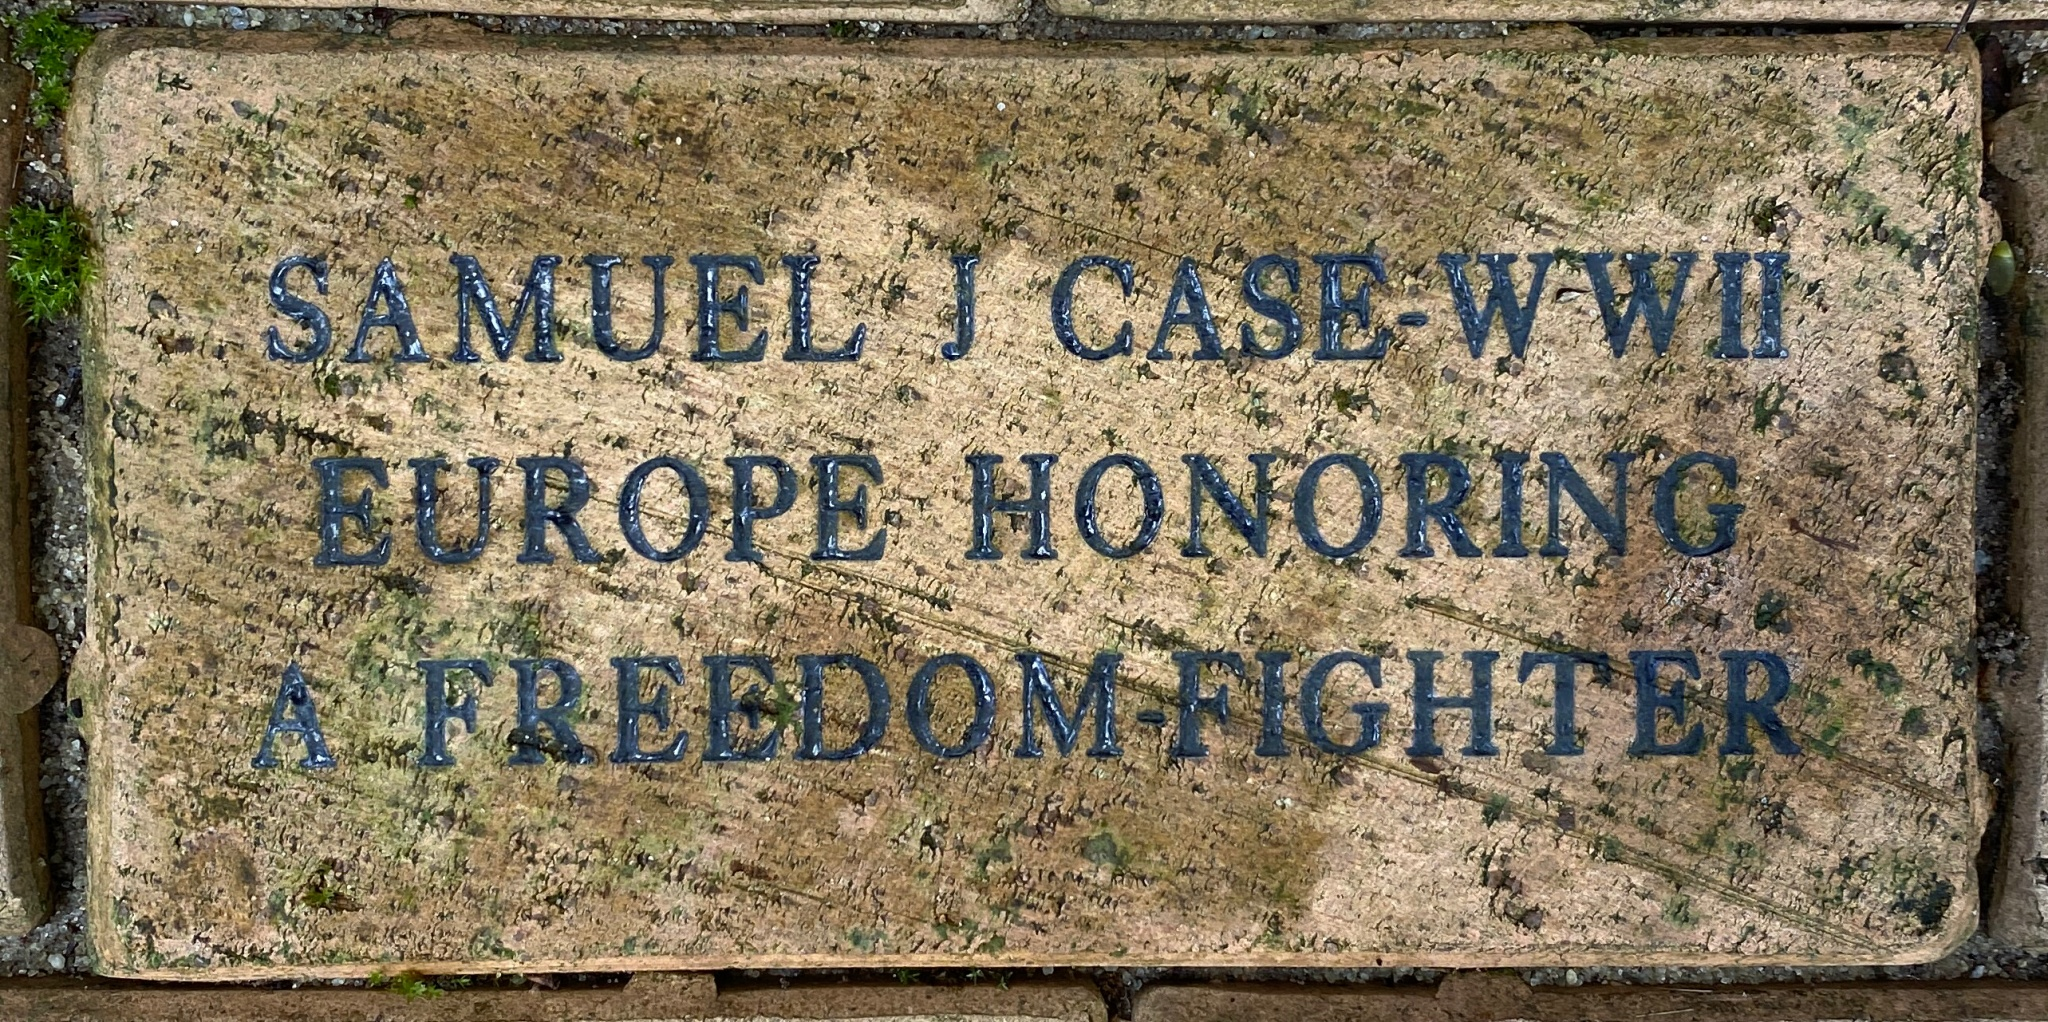 SAMUEL J CASE WWII EUROPE HONORING A FREEDOM FIGHTER